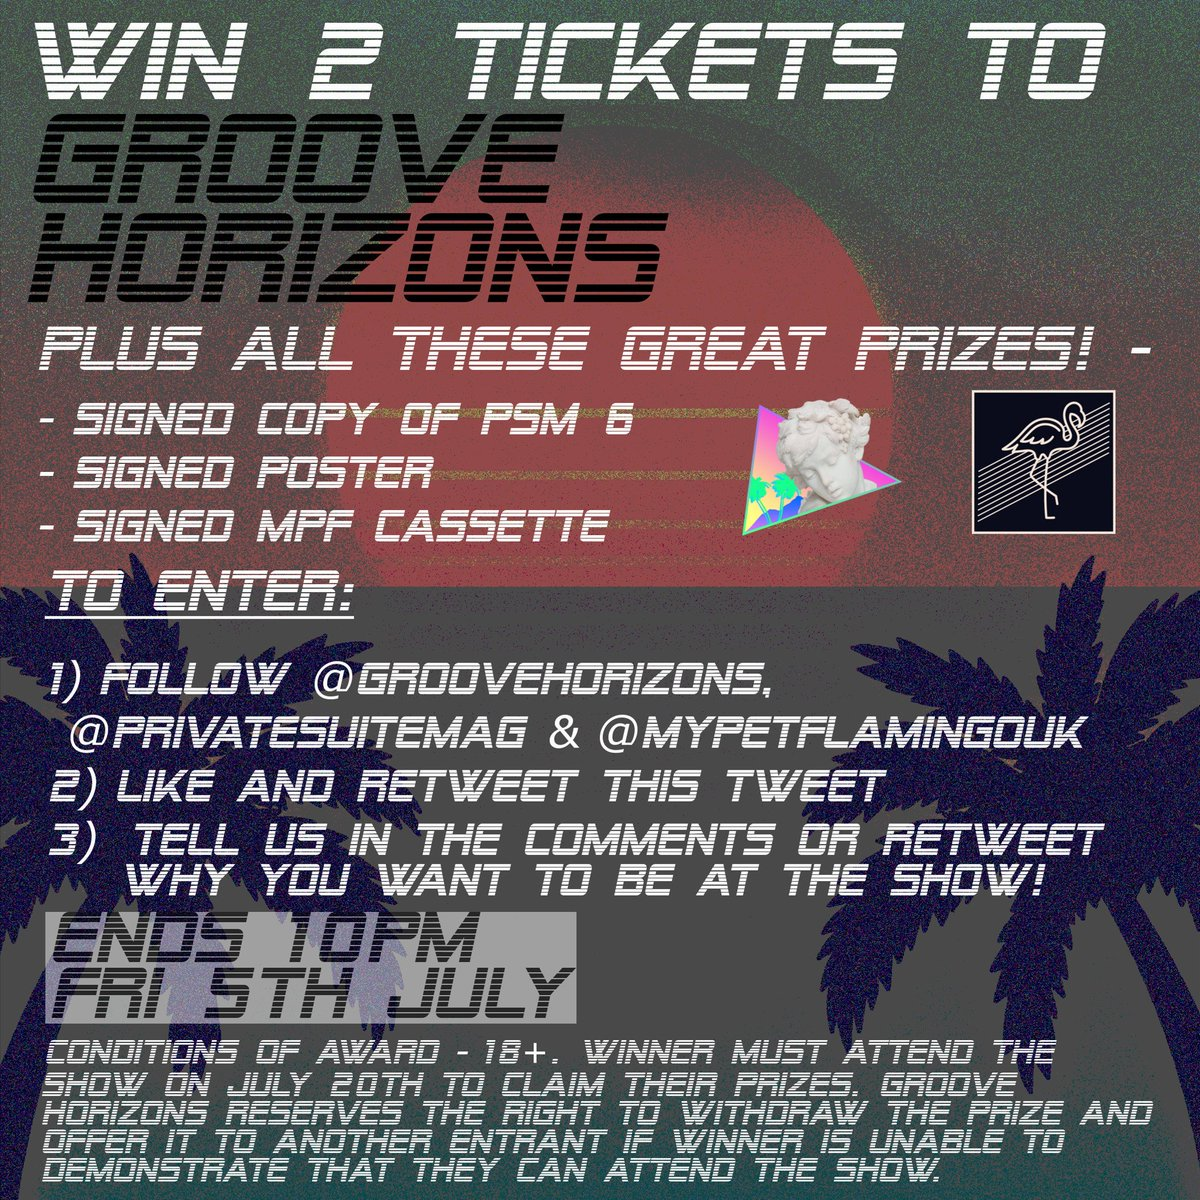 COMPETITON! / WIN 2 TICKETS TO GROOVE HORIZONS + OTHER GREAT PRIZES!  Winner announced 5th July! Cassette, poster & copy of PSM included ! Just Tweet us explaining why YOU deserve to win!  #futurefunk #groovehorizons #vaporwave #liveshow #competition #goodluck #frenchhouse <br>http://pic.twitter.com/poEwPxiDto